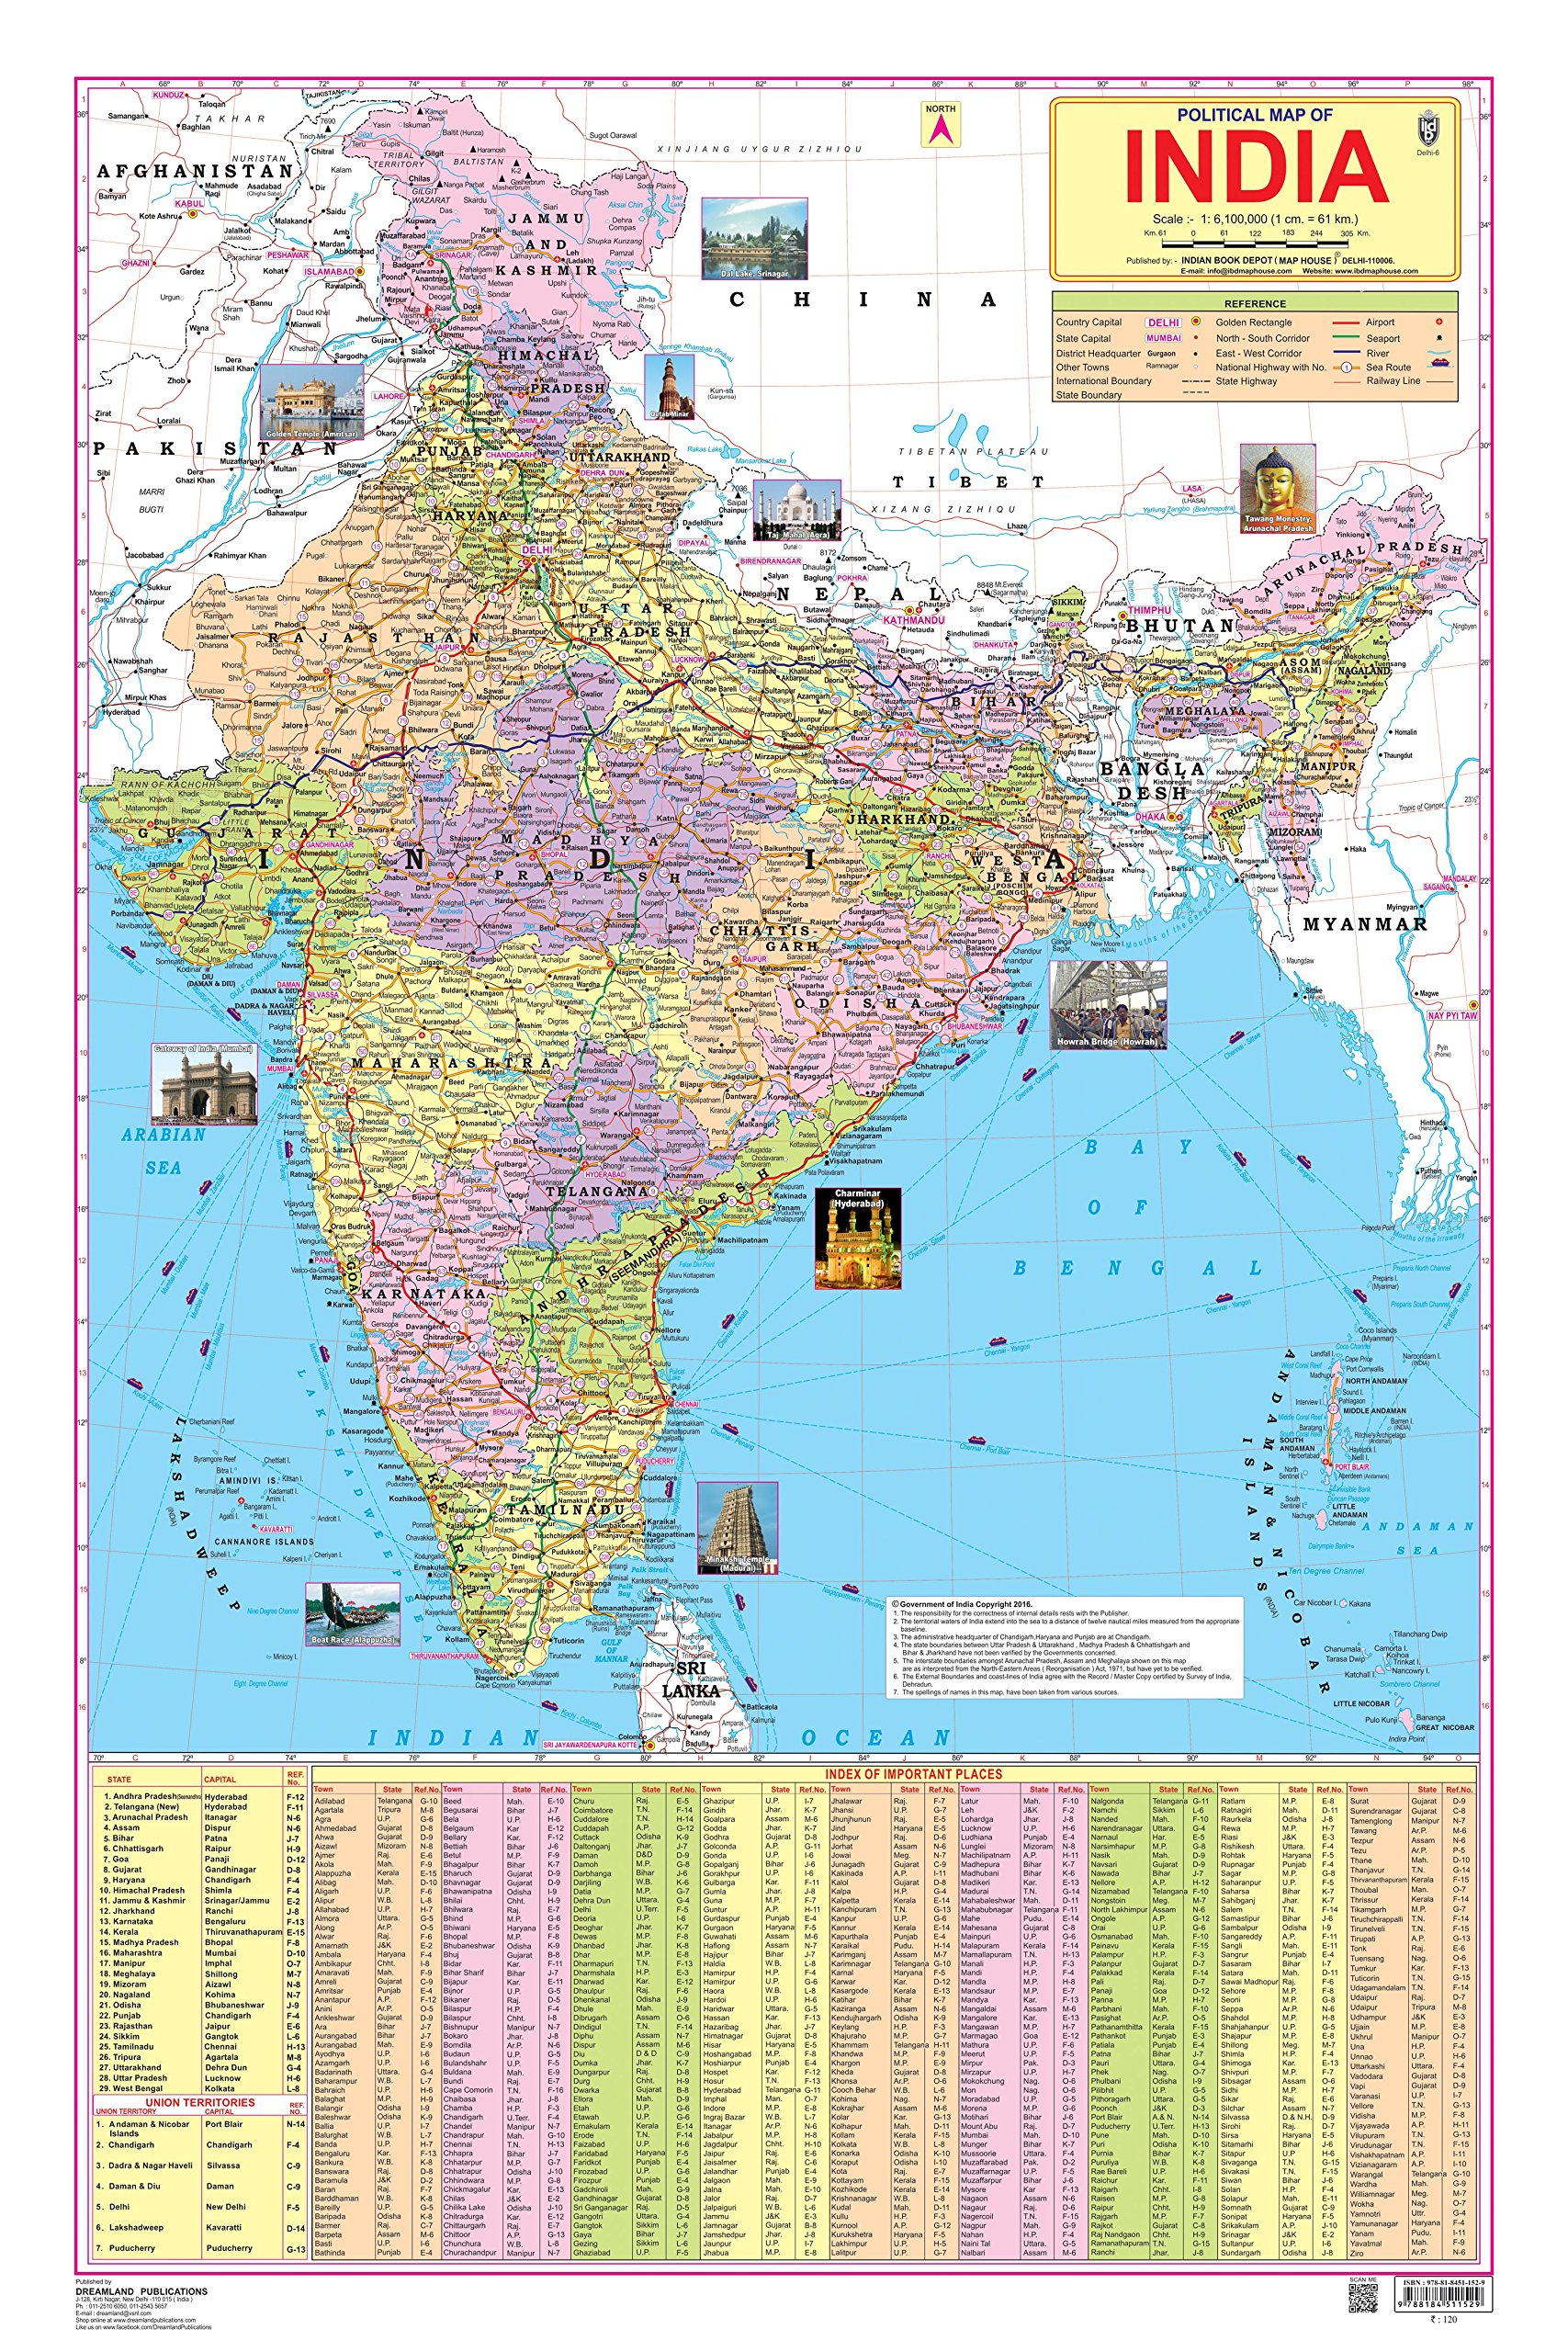 Buy india map book online at low prices in india india map buy india map book online at low prices in india india map reviews ratings amazon gumiabroncs Image collections